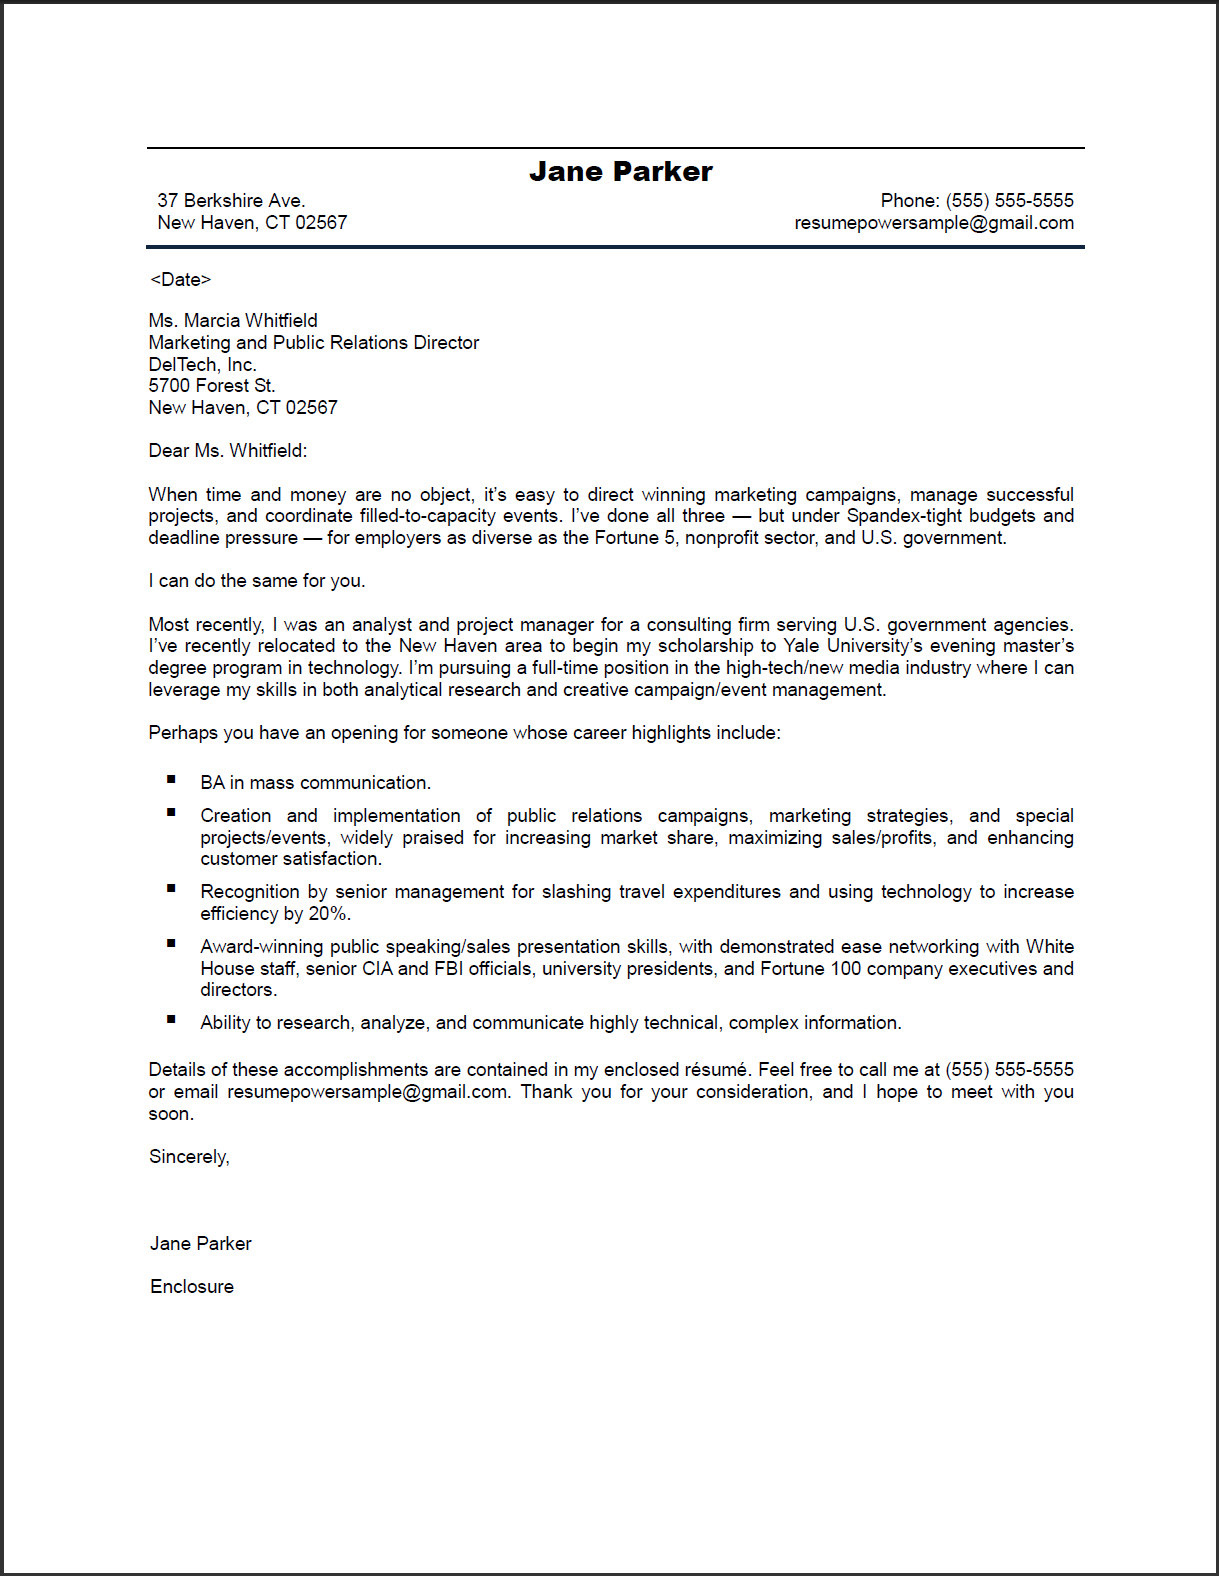 Sample Cover Letter For Teaching Job With No Experience Resumes Nurse Resume  Sample Cover Letter For  Example Cover Letters For Resume